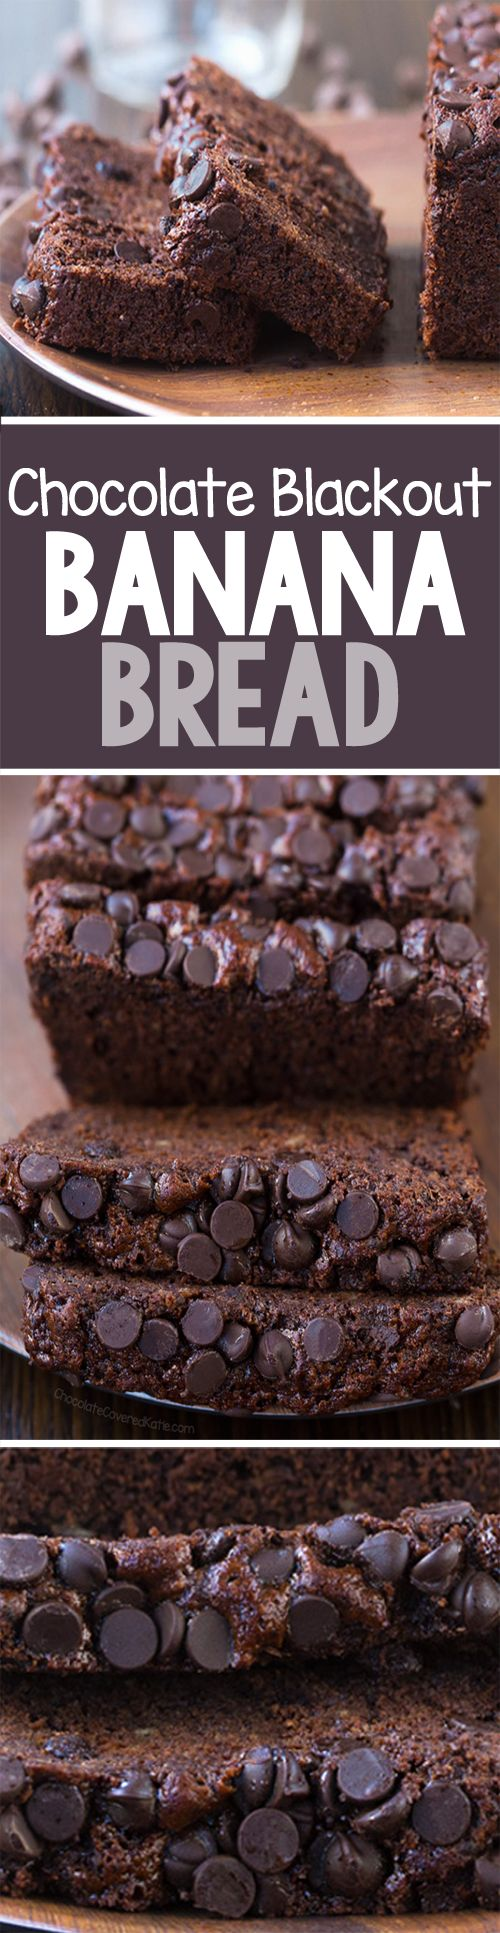 Once I learned the secret to making dark chocolate banana bread that is richer and more chocolatey, I never looked back!